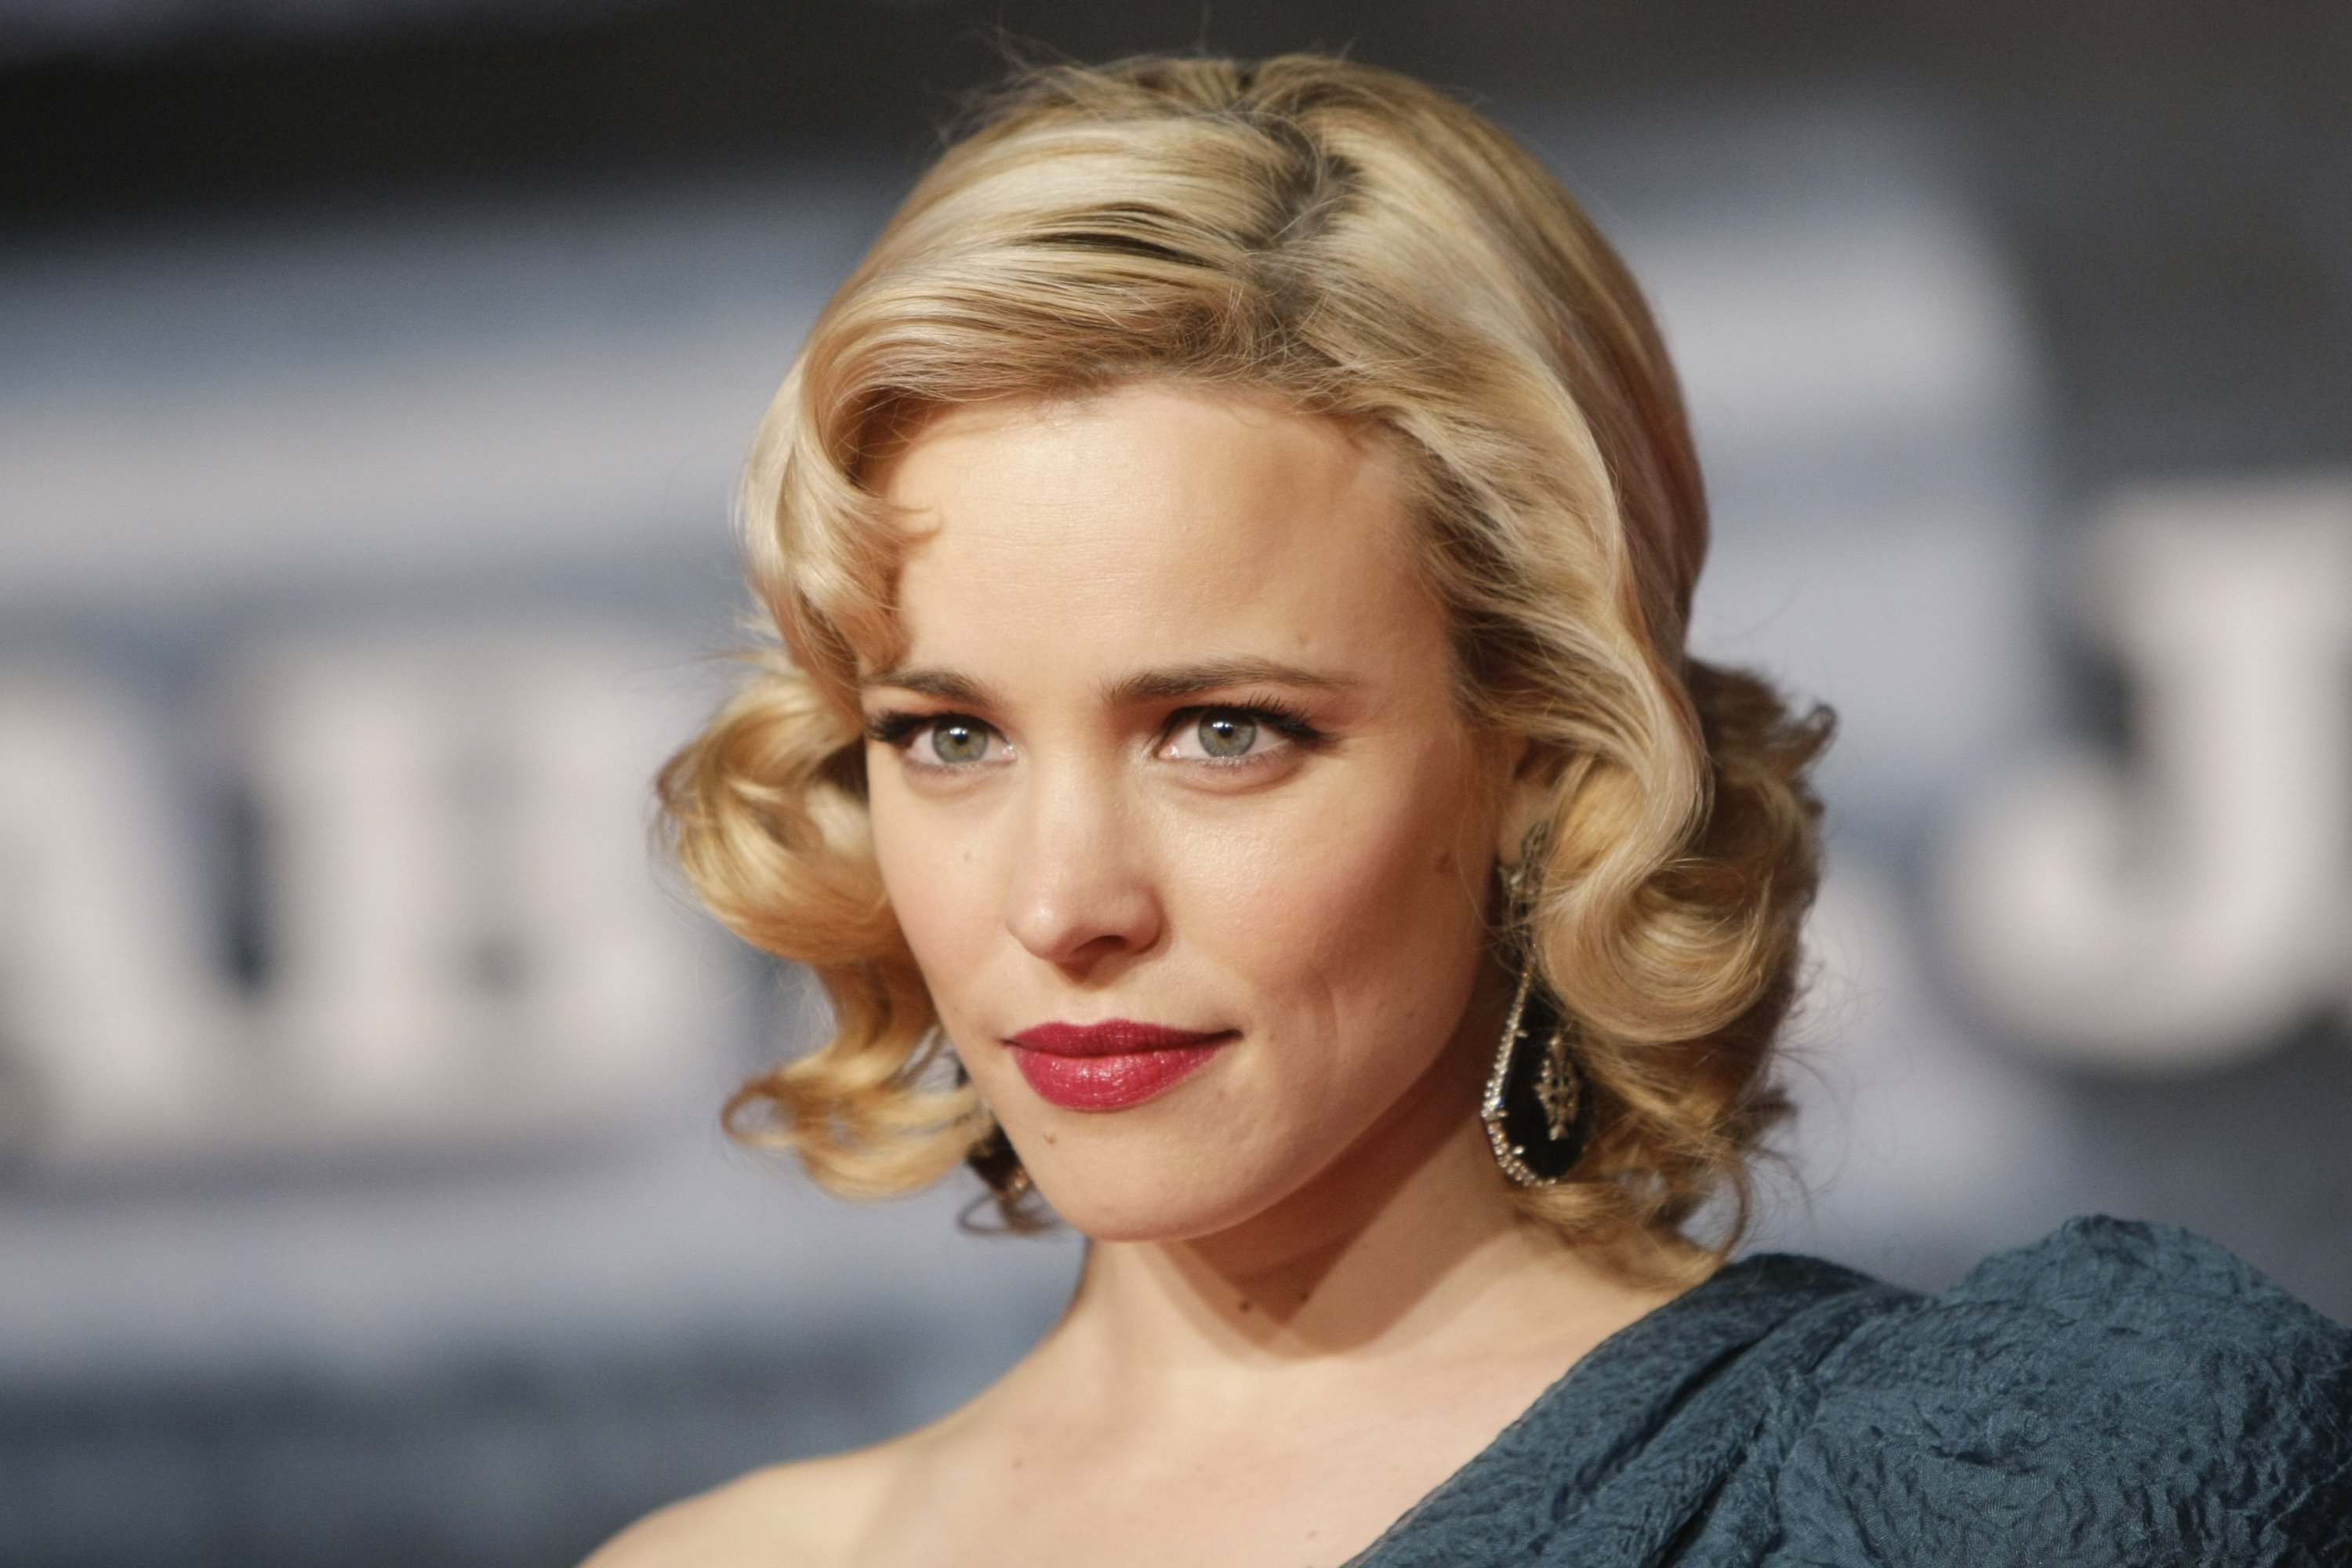 rachel mcadams biographyrachel mcadams instagram, rachel mcadams and ryan gosling, rachel mcadams 2016, rachel mcadams movies, rachel mcadams gif, rachel mcadams 2017, rachel mcadams films, rachel mcadams vk, rachel mcadams инстаграм, rachel mcadams true detective, rachel mcadams фильмы, rachel mcadams boyfriend, rachel mcadams dating, rachel mcadams фильмография, rachel mcadams twitter, rachel mcadams wiki, rachel mcadams kinopoisk, rachel mcadams gallery, rachel mcadams biography, rachel mcadams gif hunt